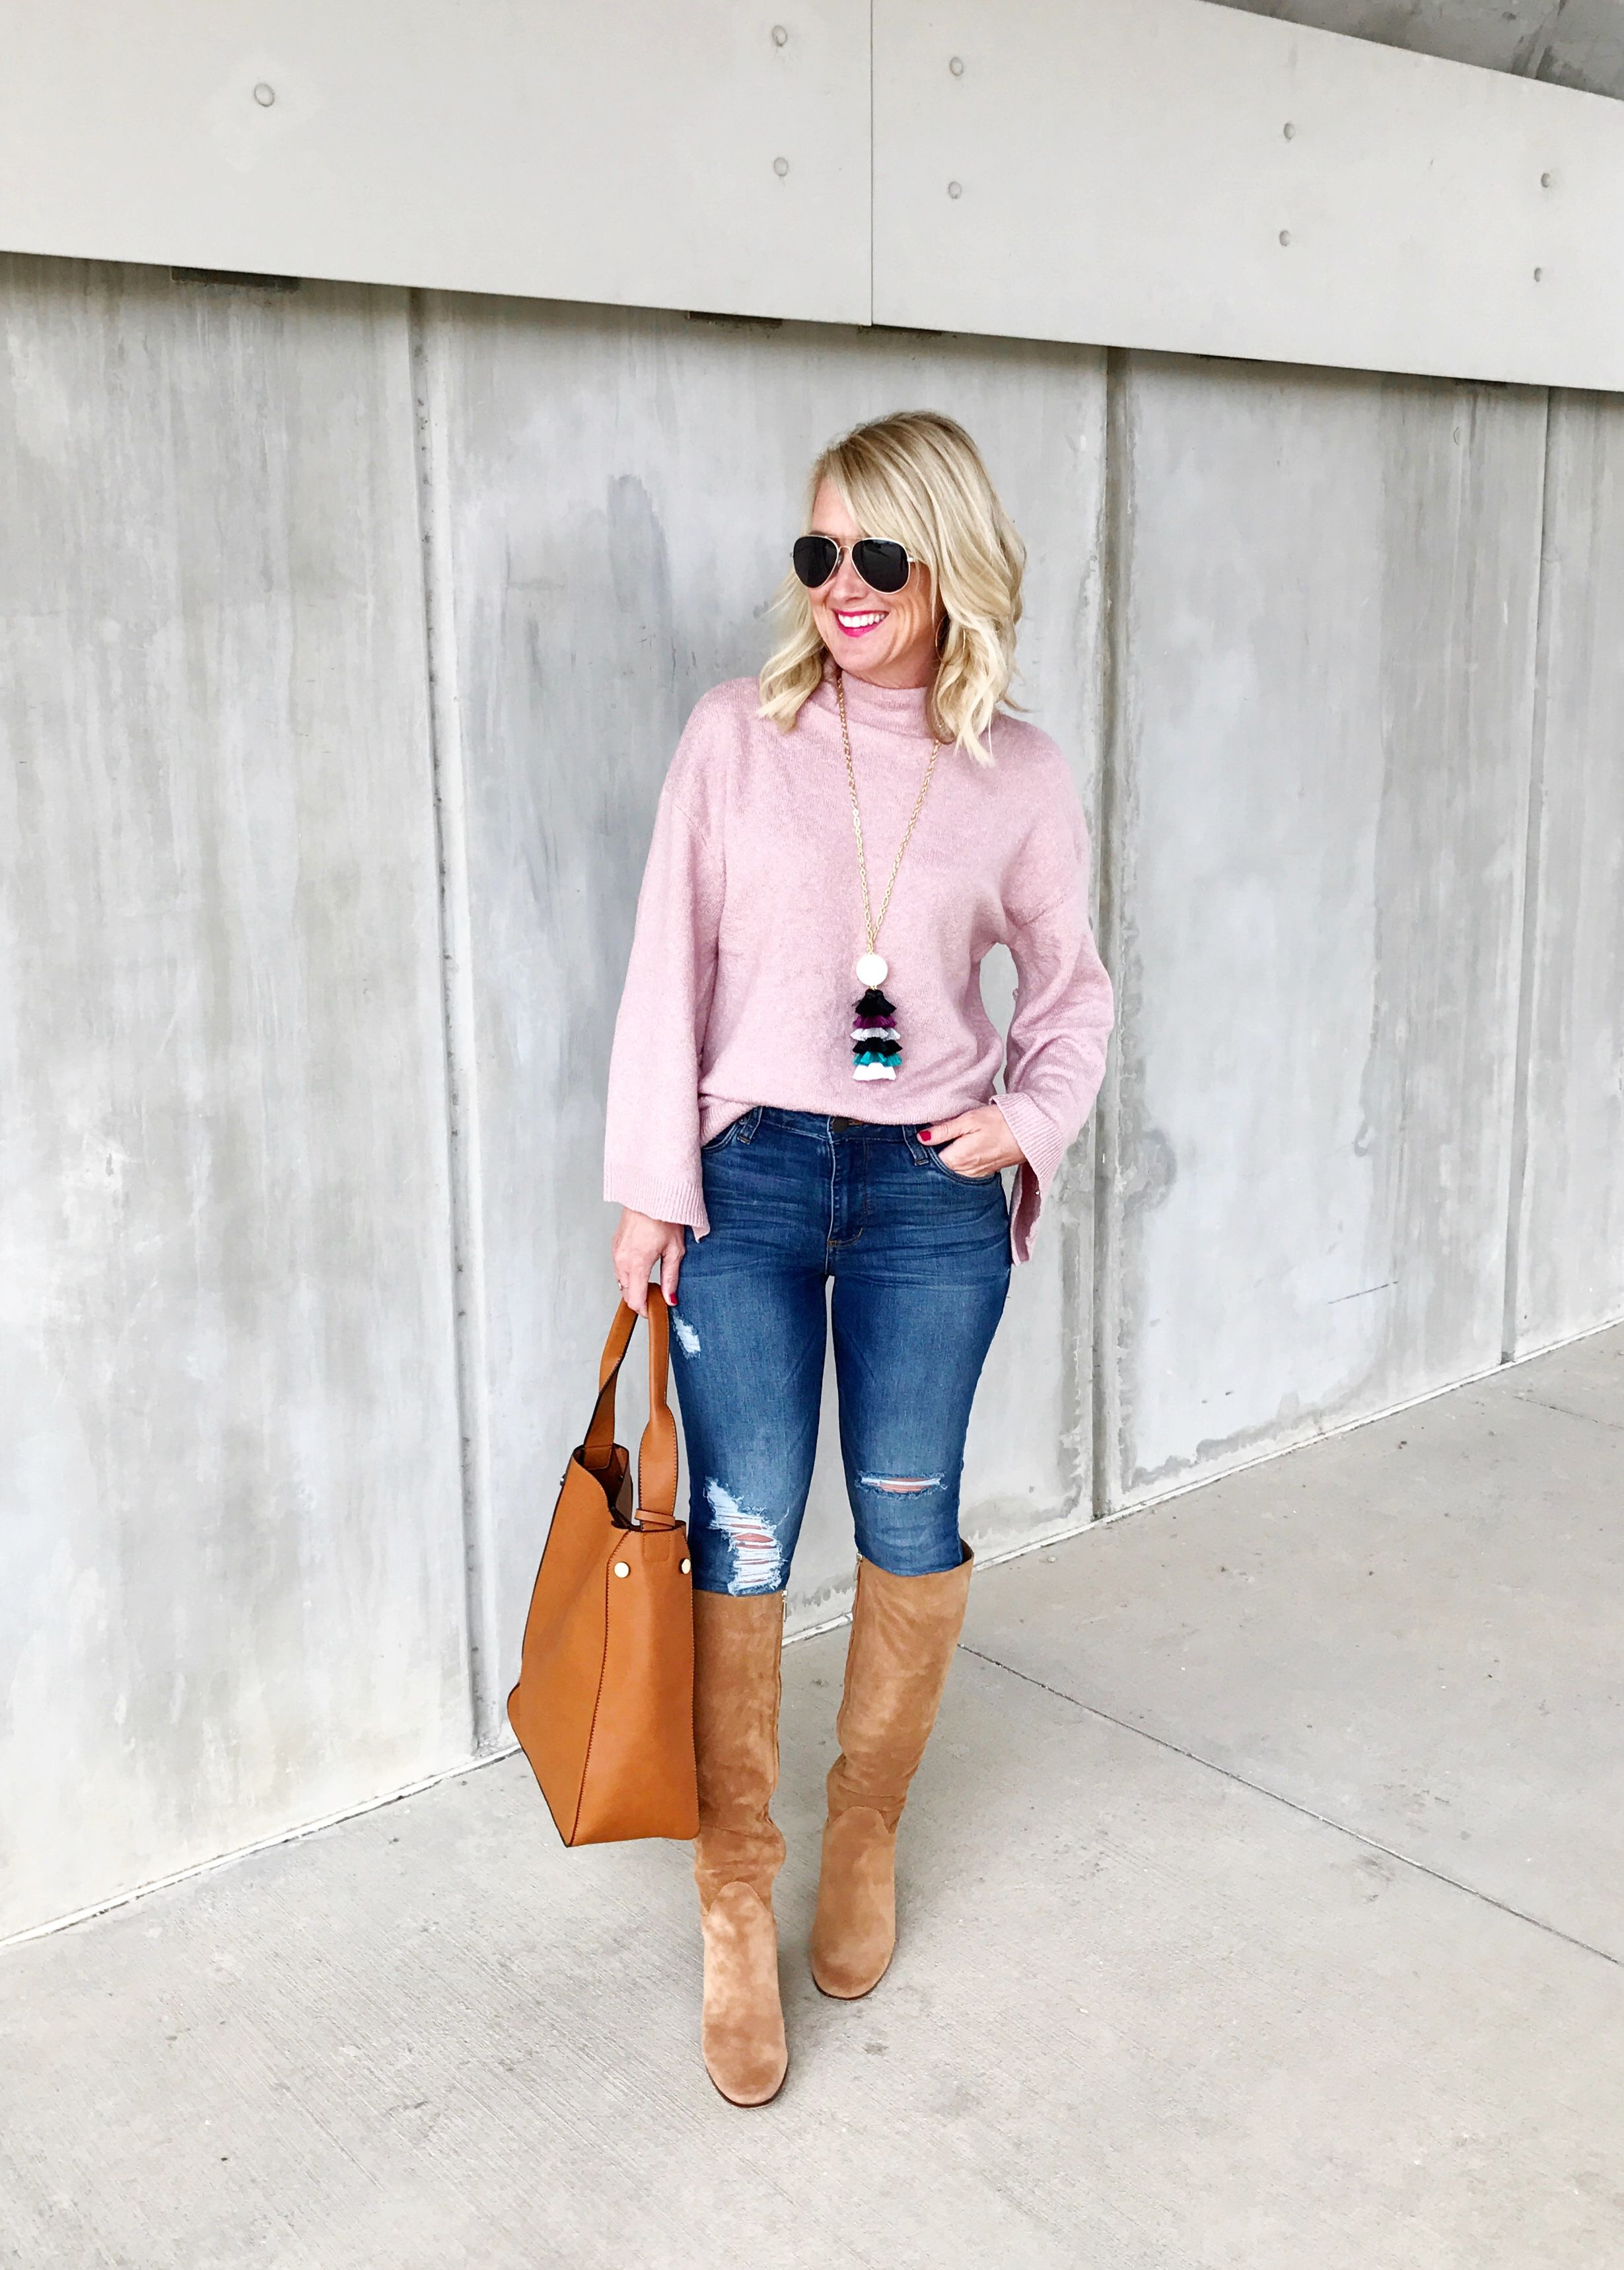 Pink sweater with blue jeans and tall warm caramel boots  7e21daf5e